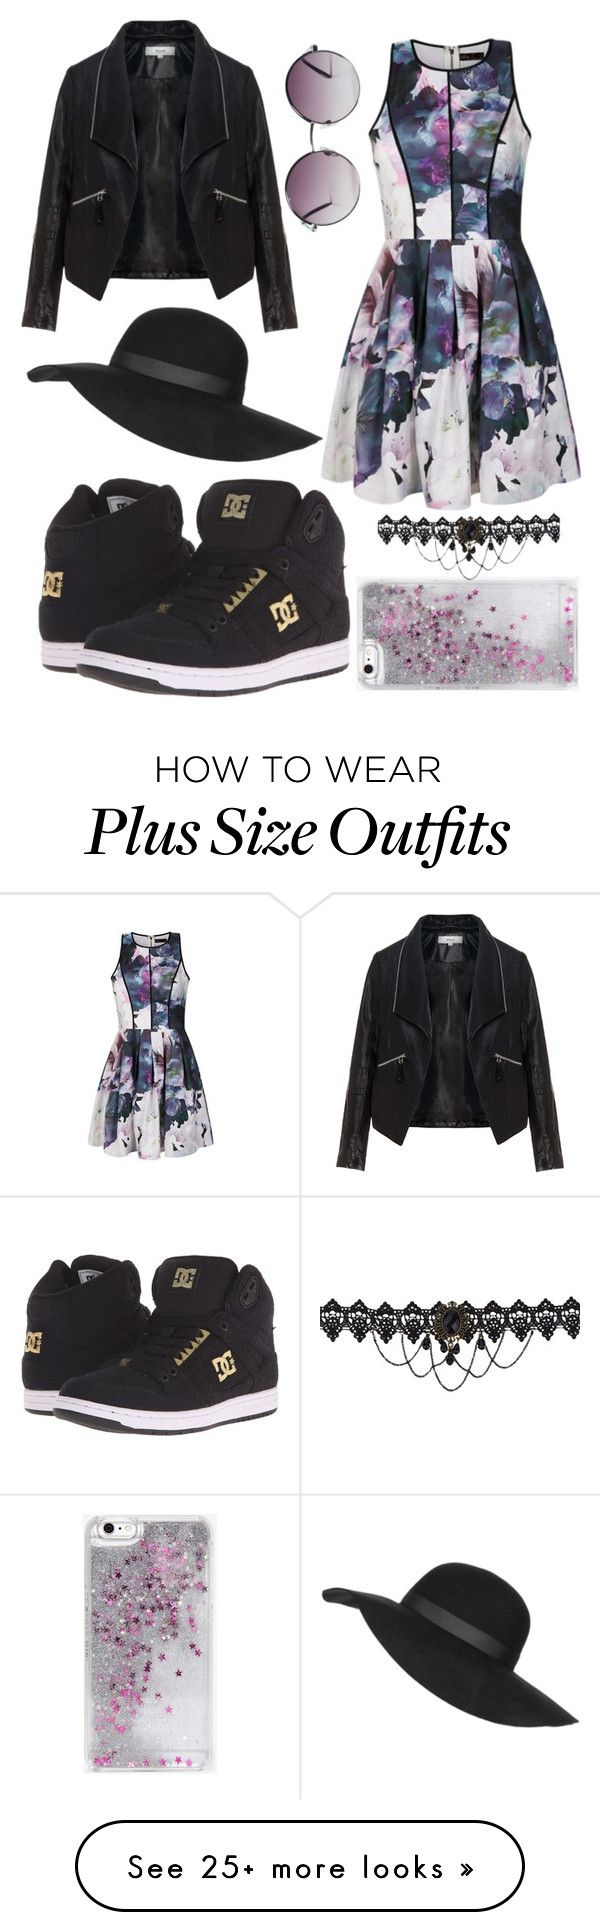 """Street style 2016"" by pavetra22 on Polyvore featuring DC Shoes, Ally Fashion, Zizzi, Topshop, Monki and Skinnydip"